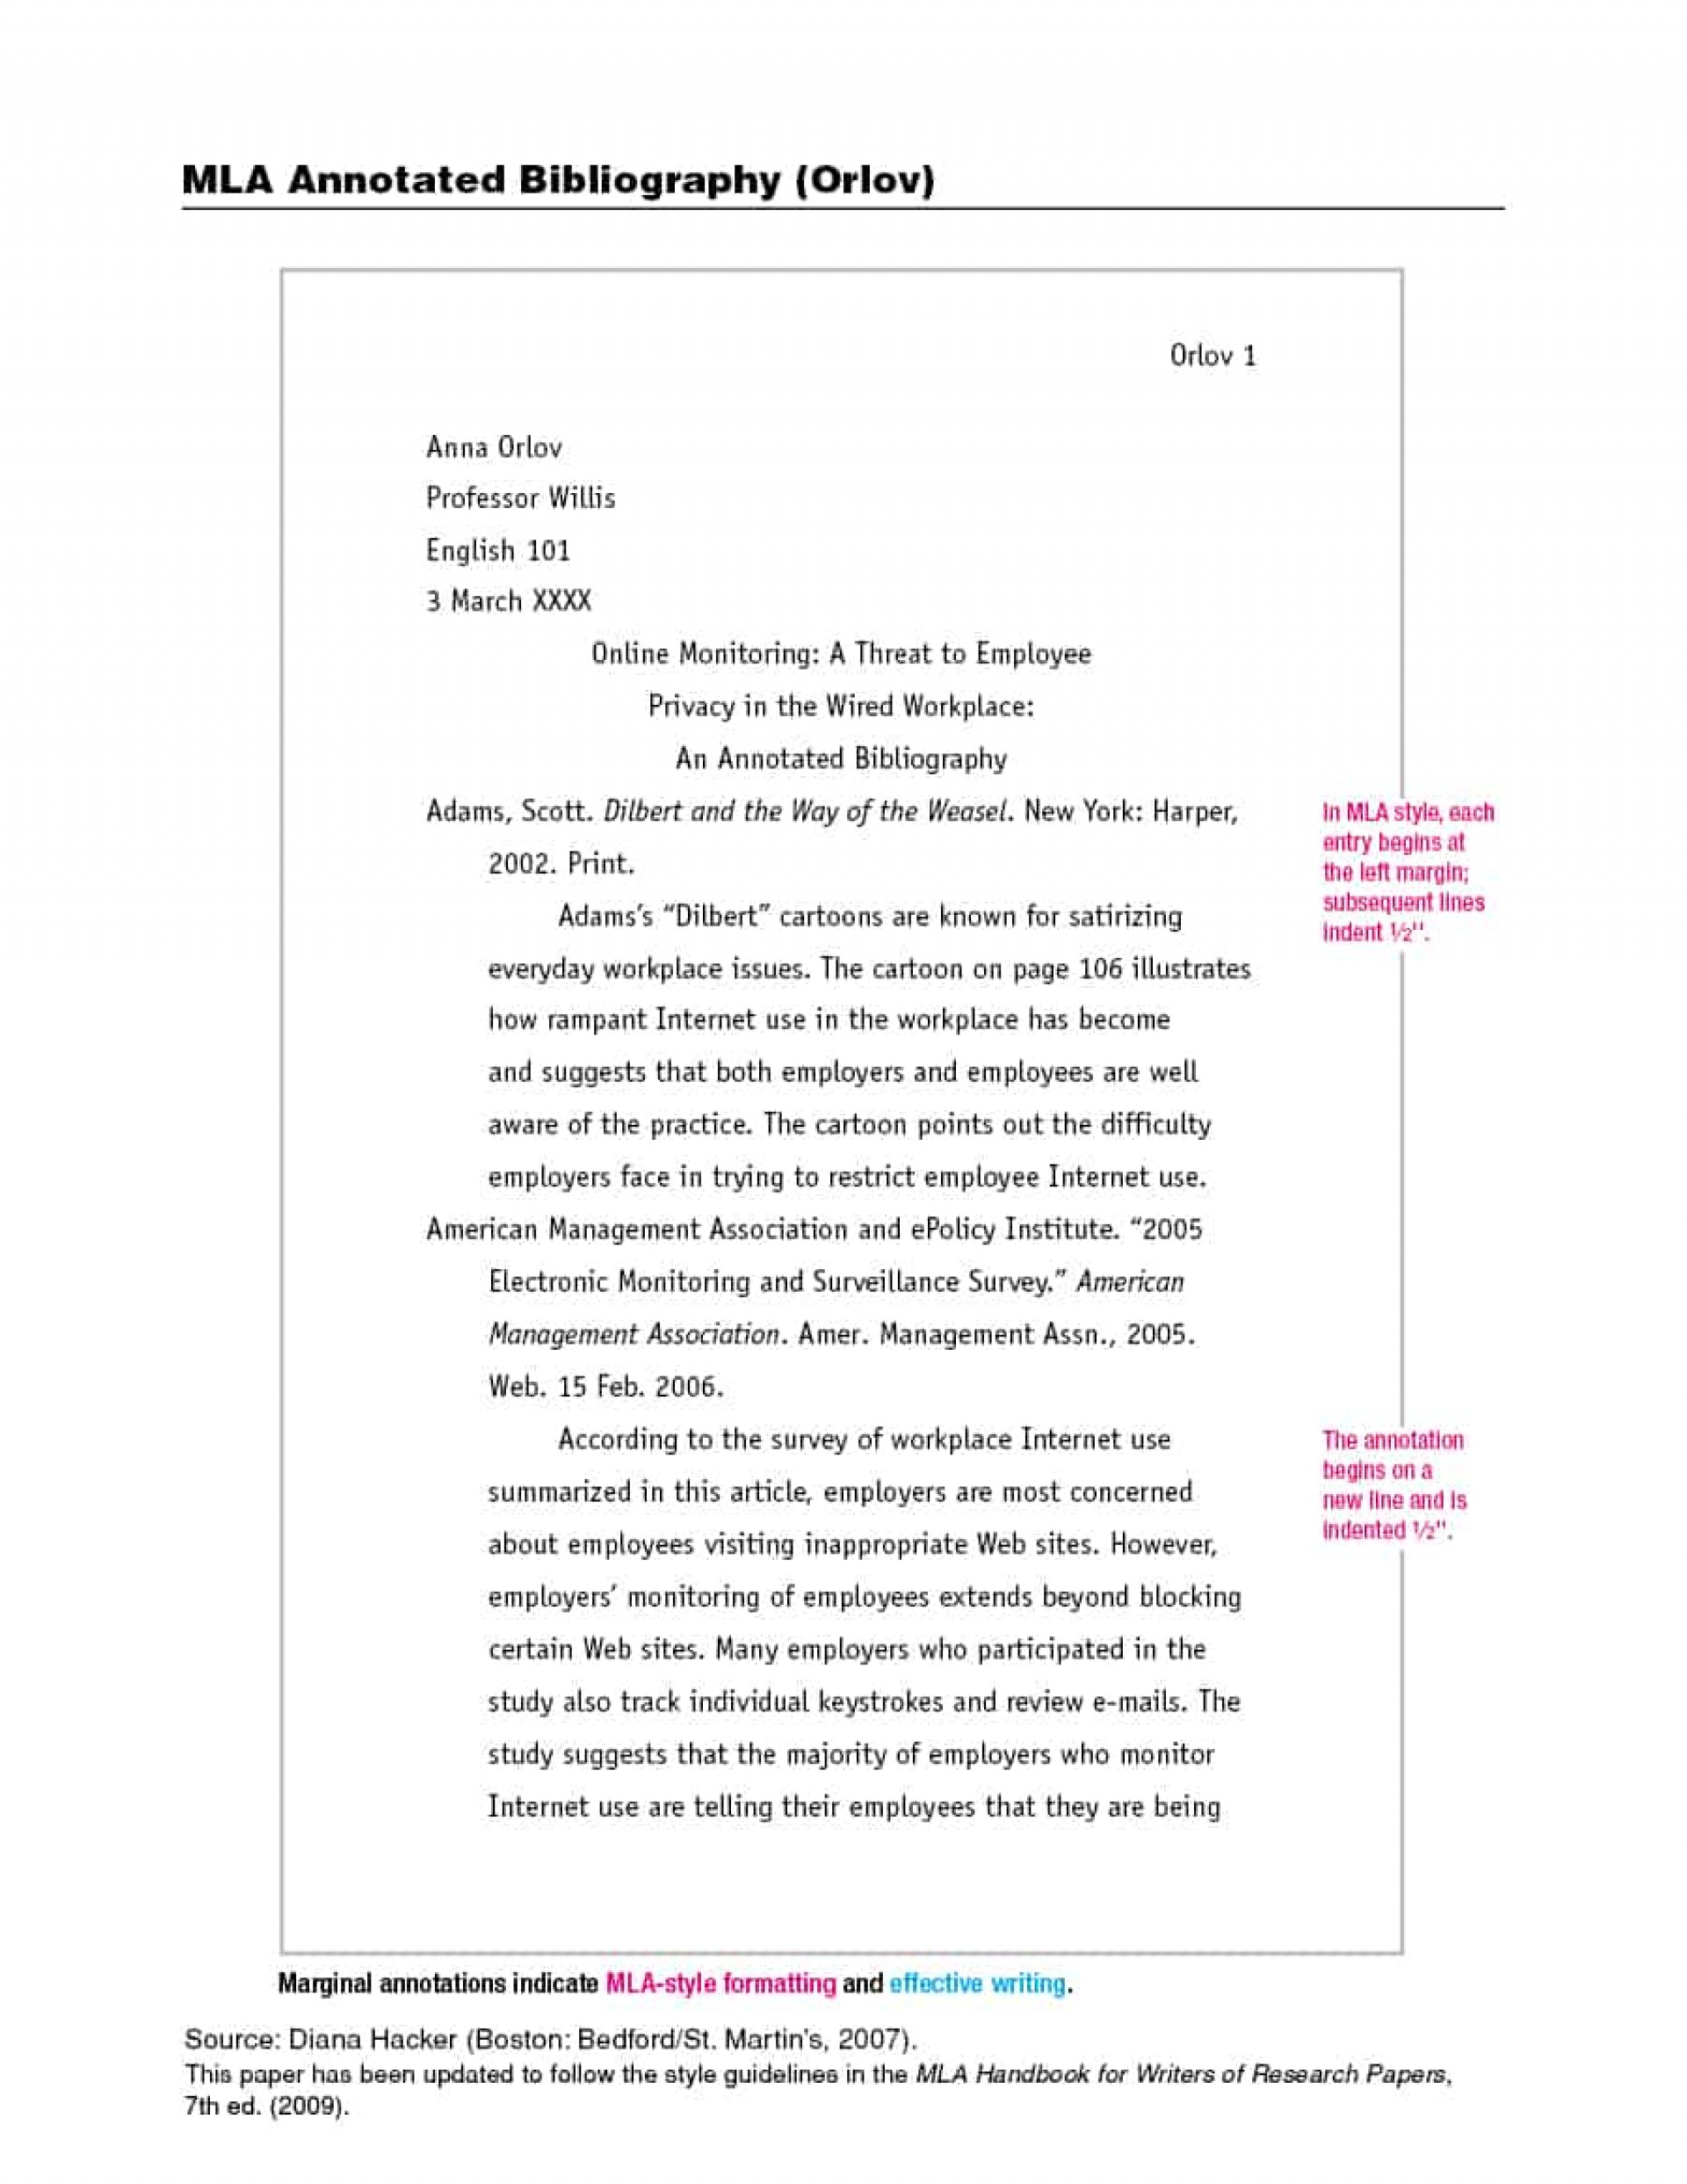 008 Research Paper Mla Format Template Using Style Includes Which Of The Following Breathtaking A Formats 1920